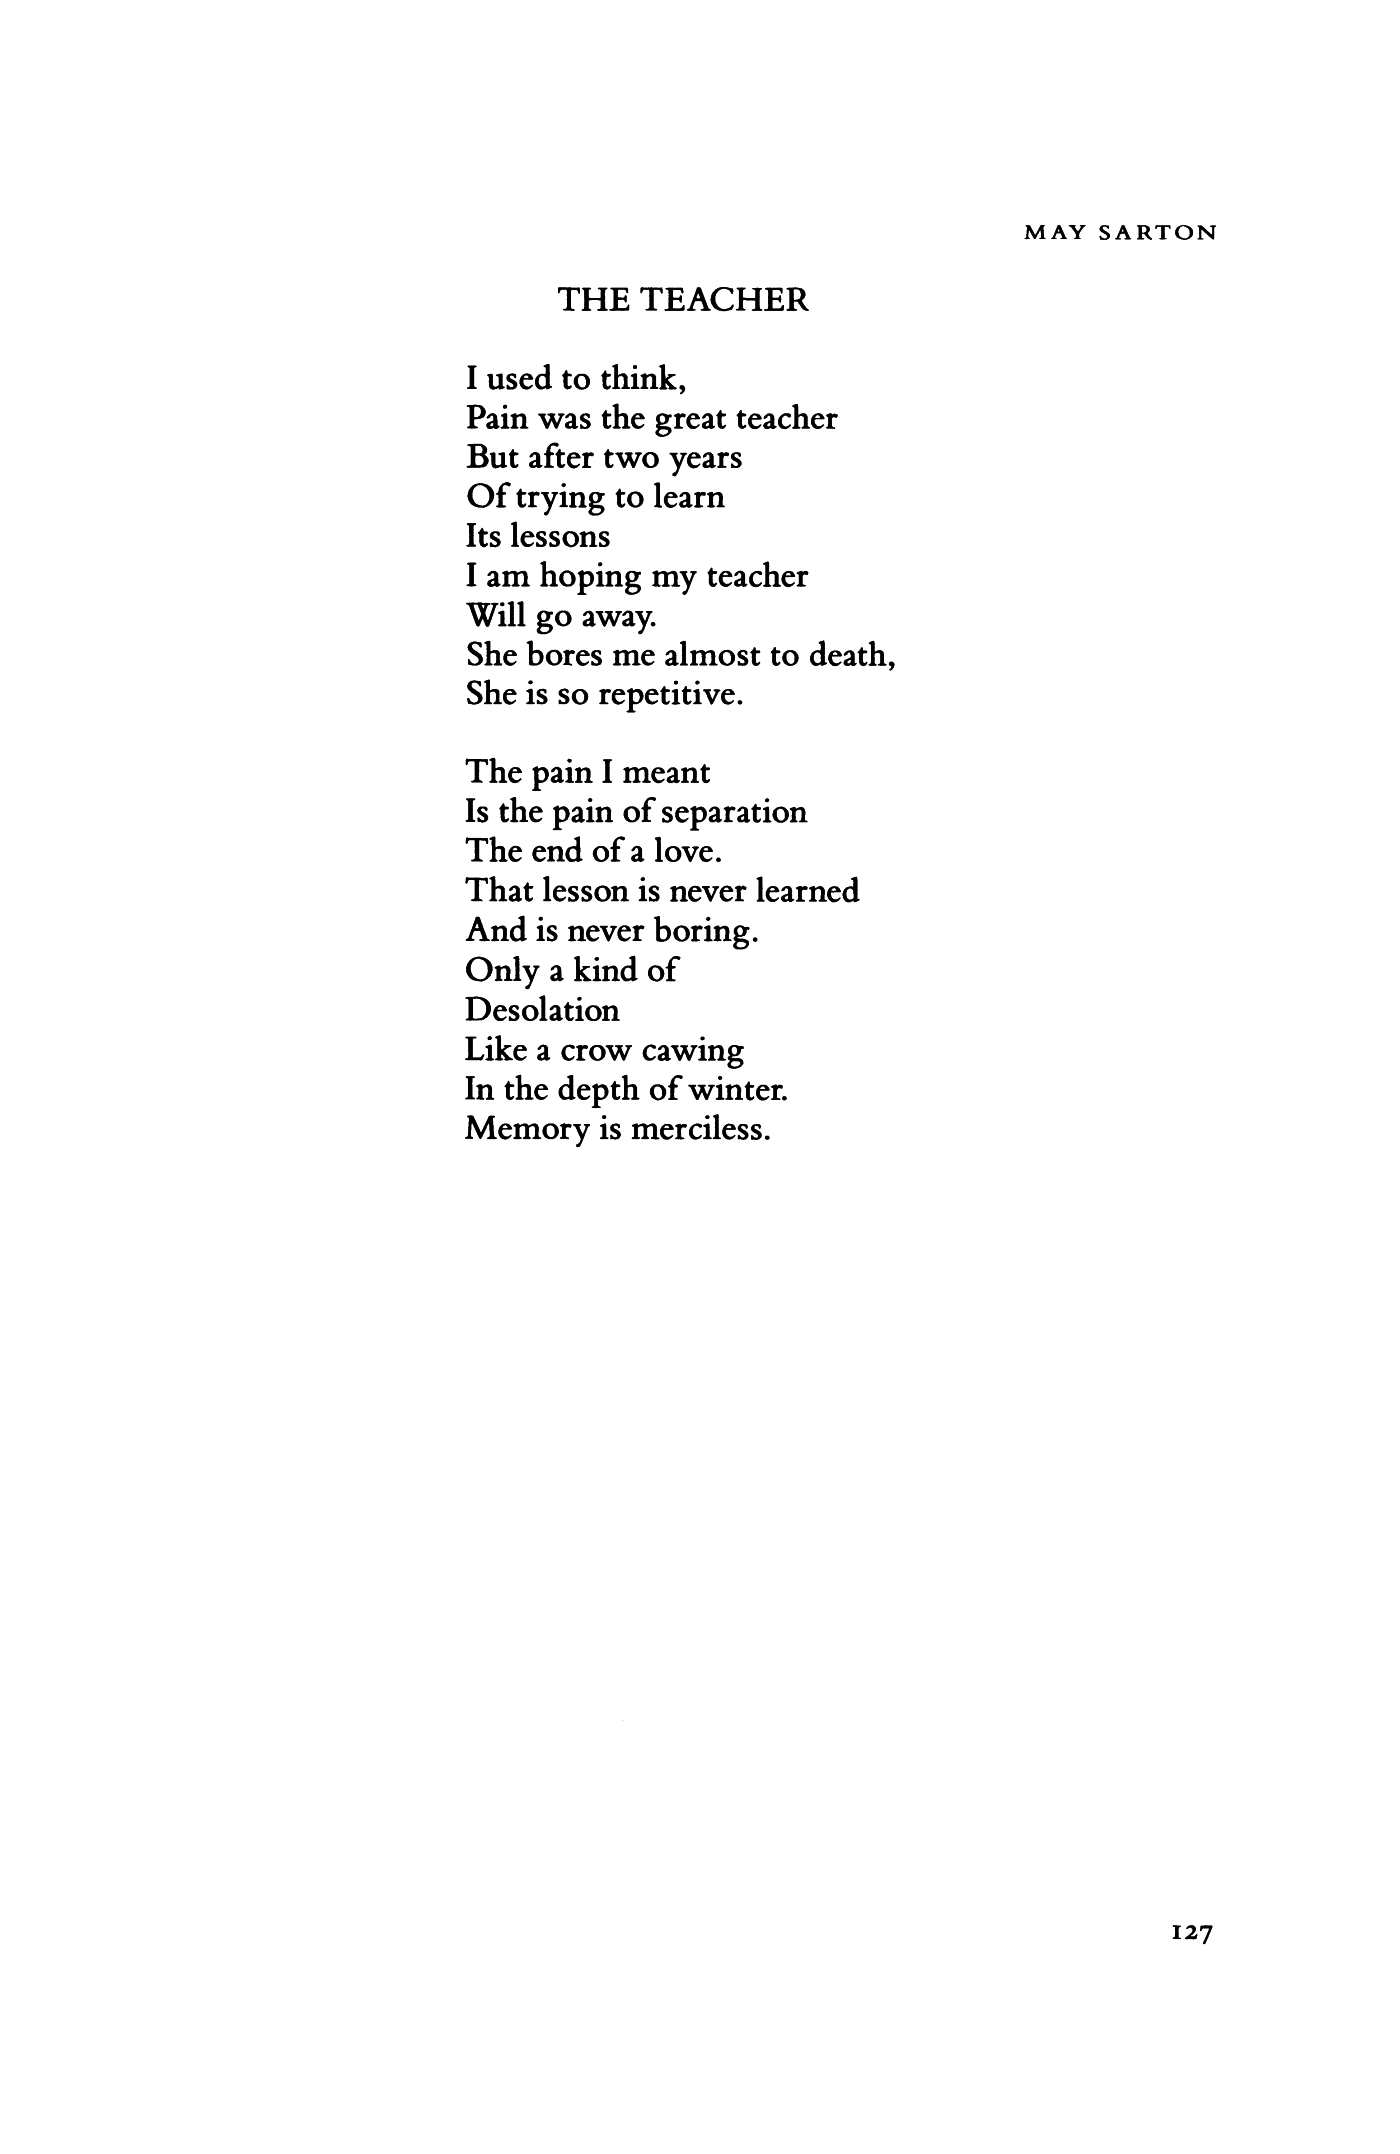 The Teacher by May Sarton   Poetry Magazine